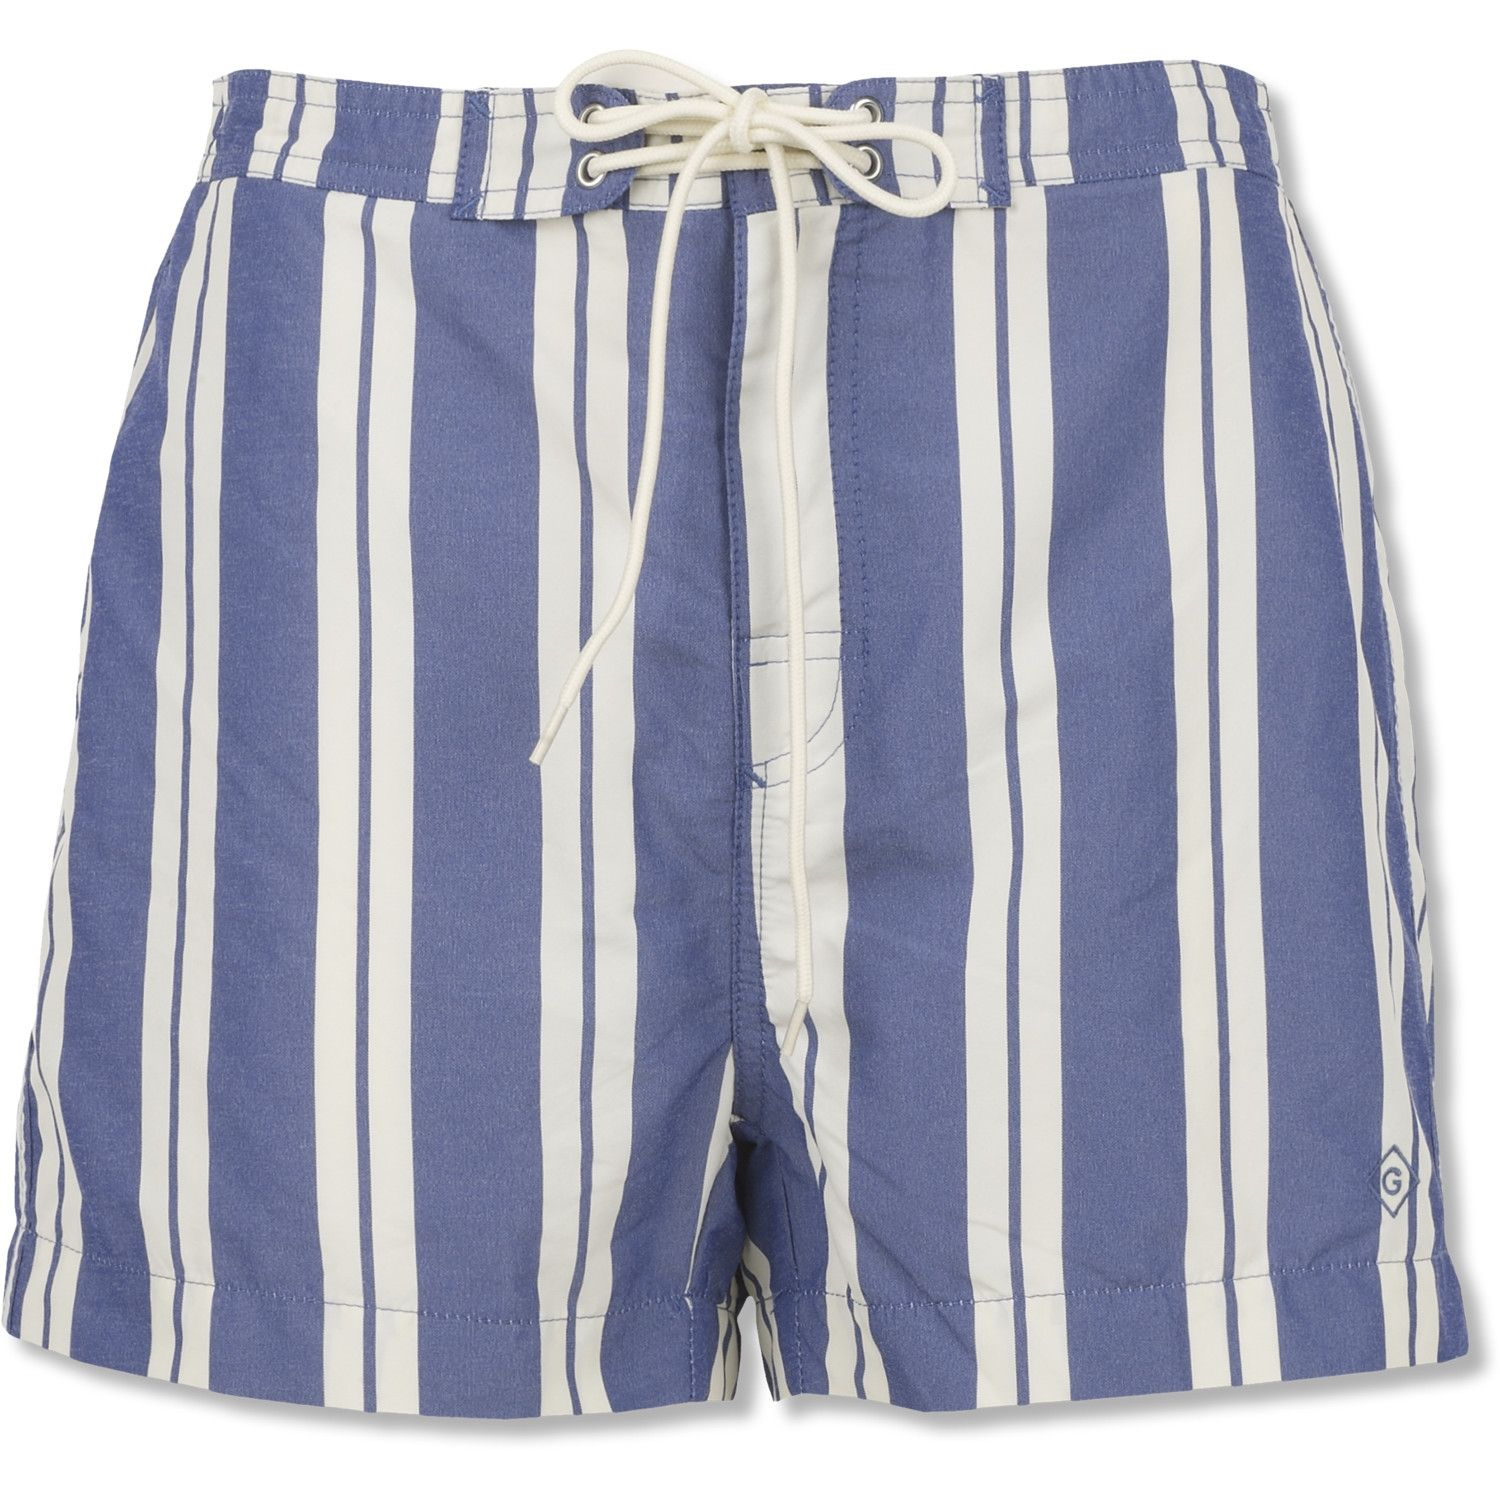 10e1af8be2 Blue-and-white vertical striped swim trunks | Swimsuits | Swimsuits ...